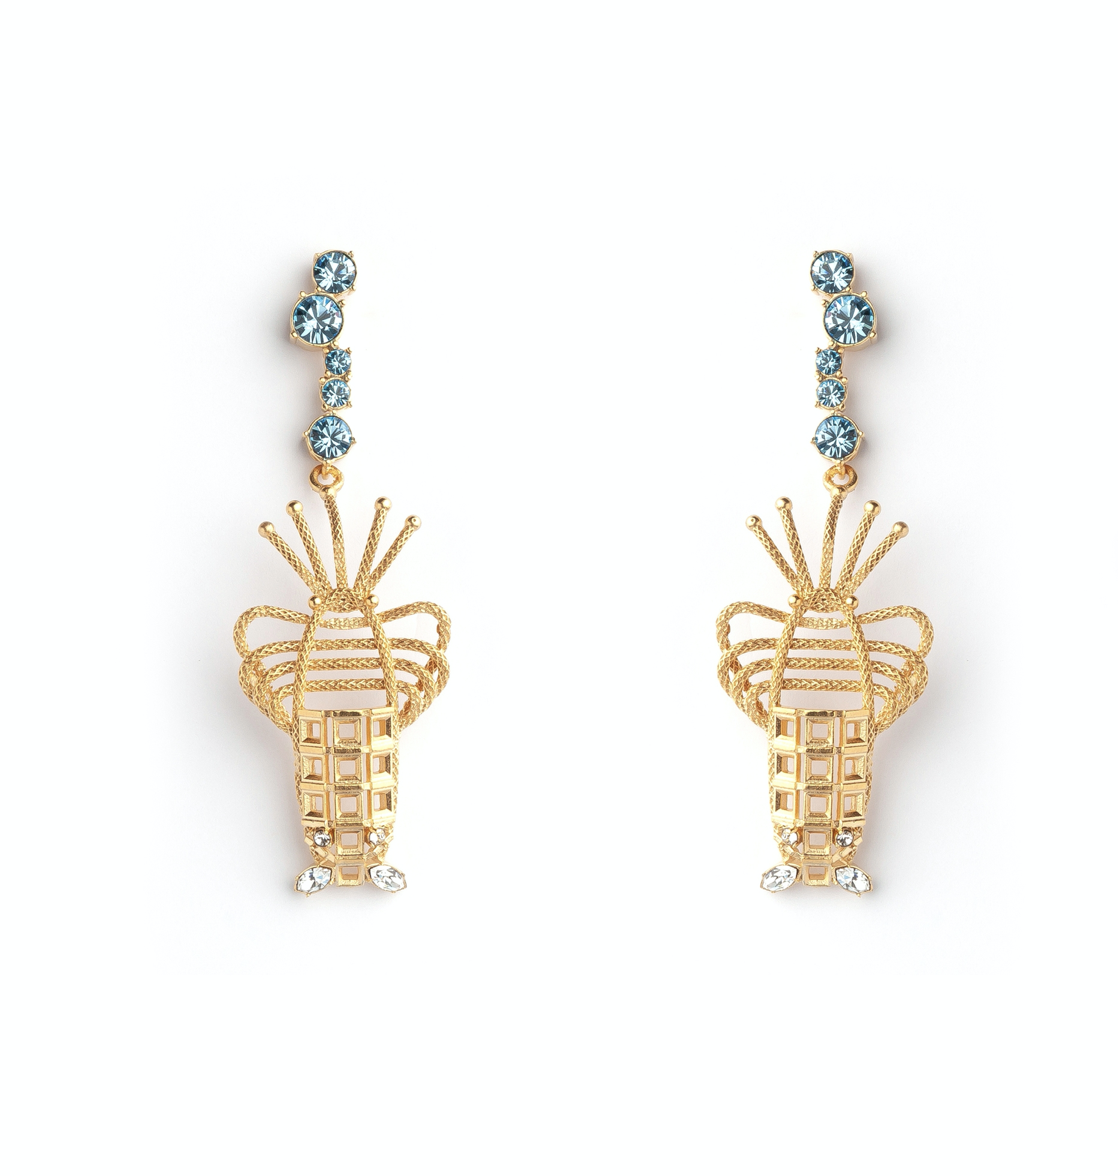 Lobster Pierced Luxury Earrings by Sonia Petroff on curated-crowd.com